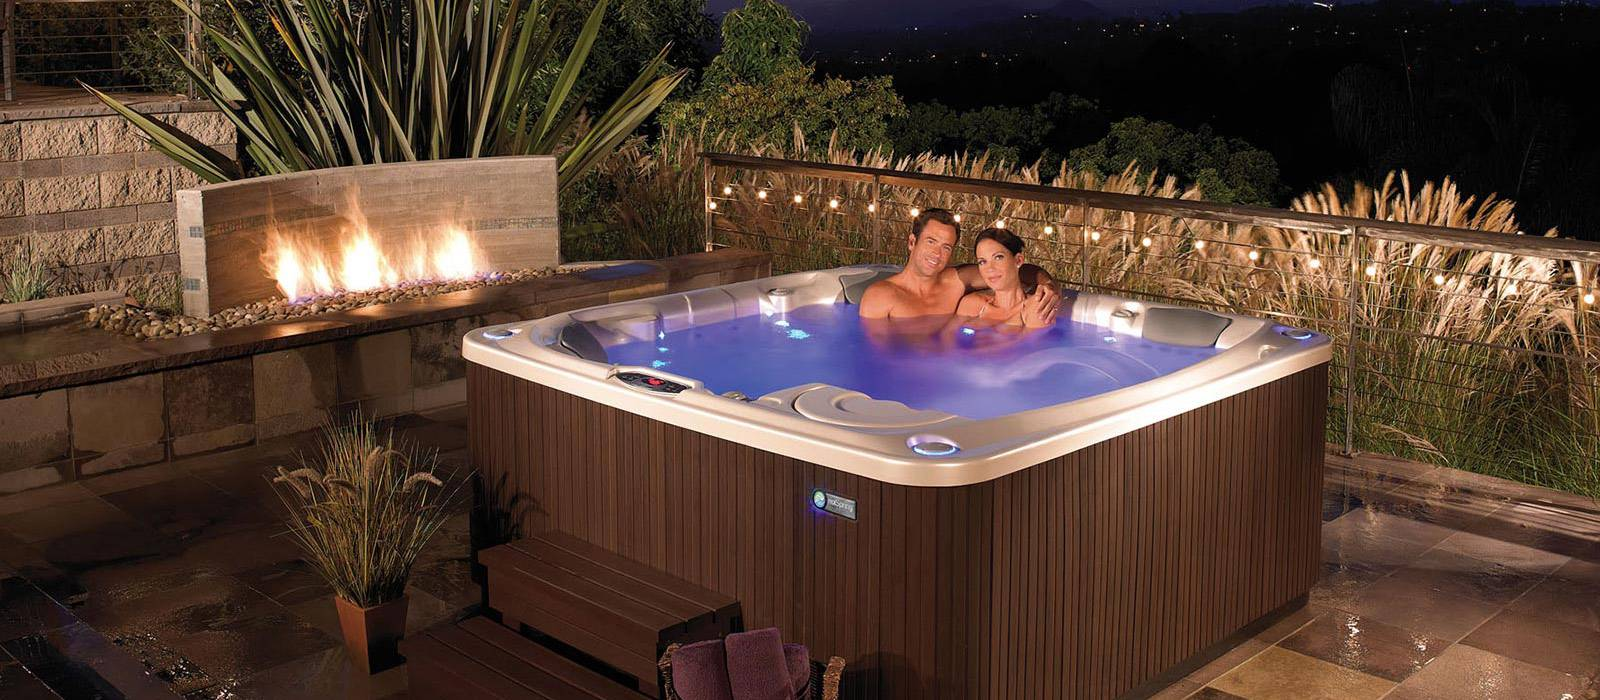 Bring luxury and style to your backyard with the elegant Flair hot tub, featuring the Raio® lighting system with 30 points of light and the tranquil Vidro® backlit waterfall.